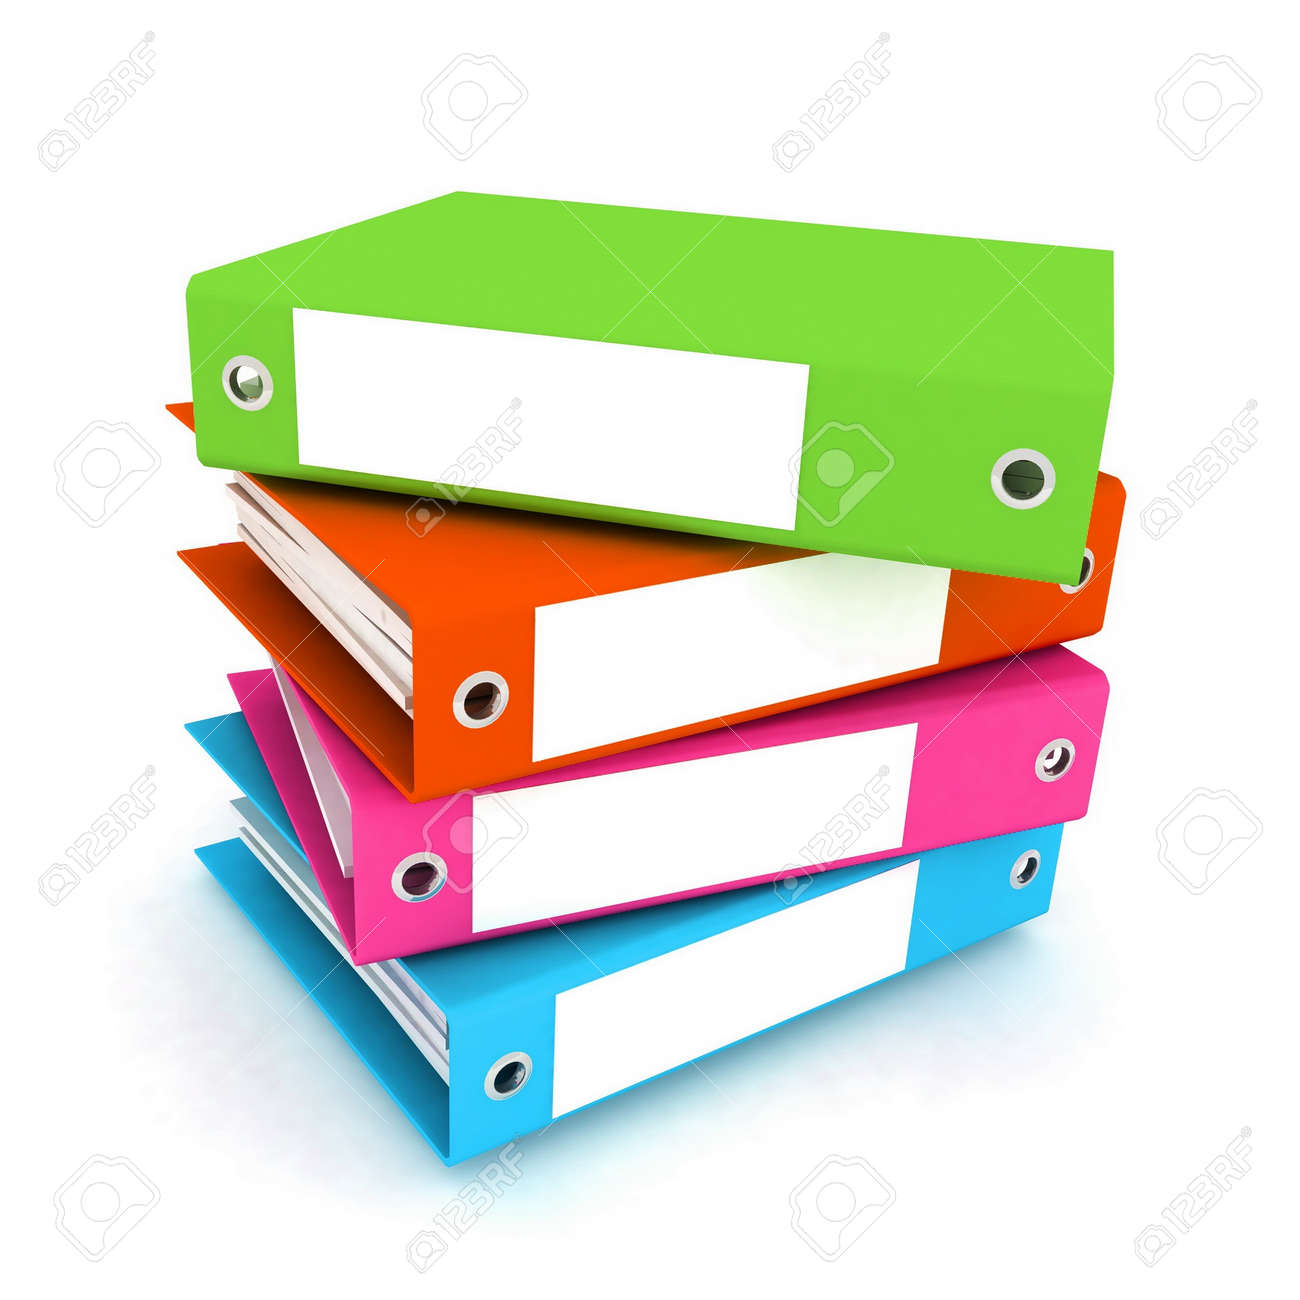 folders for papers on a white background Stock Photo - 12584956